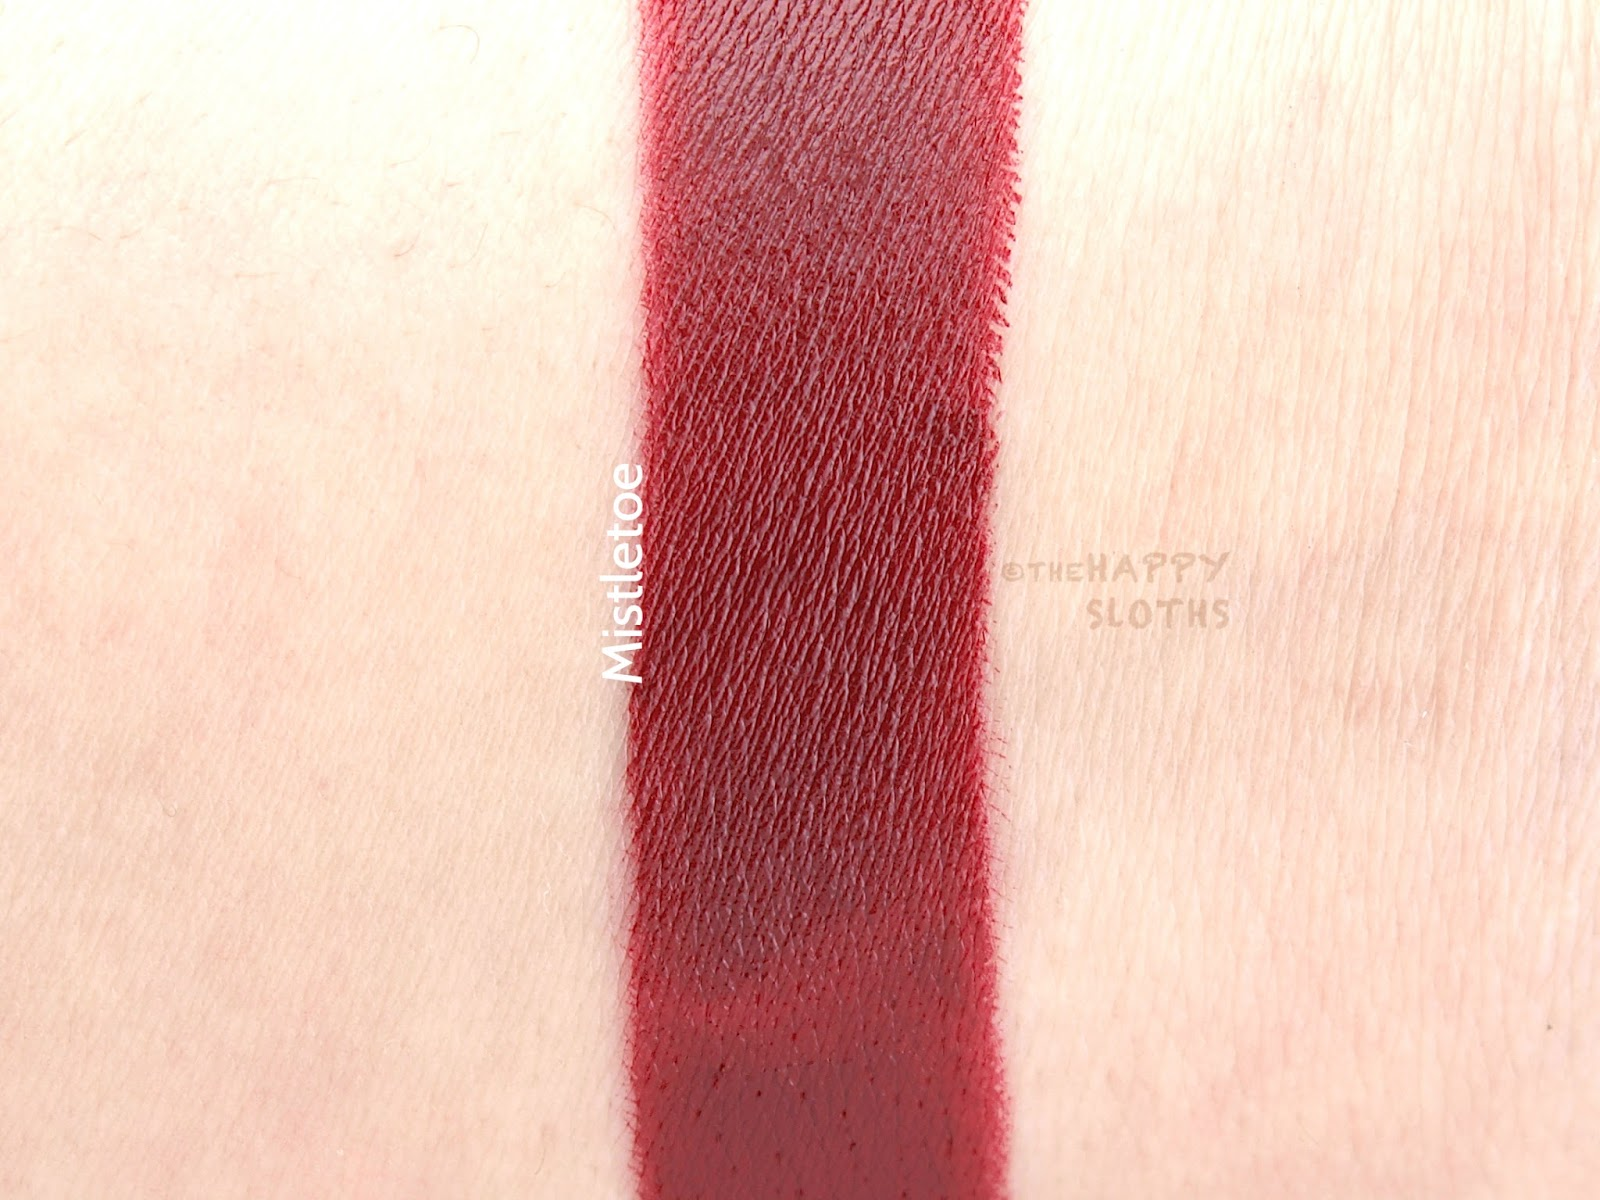 Bite Mistletoe Amuse Bouche Lipstick Review and Swatches